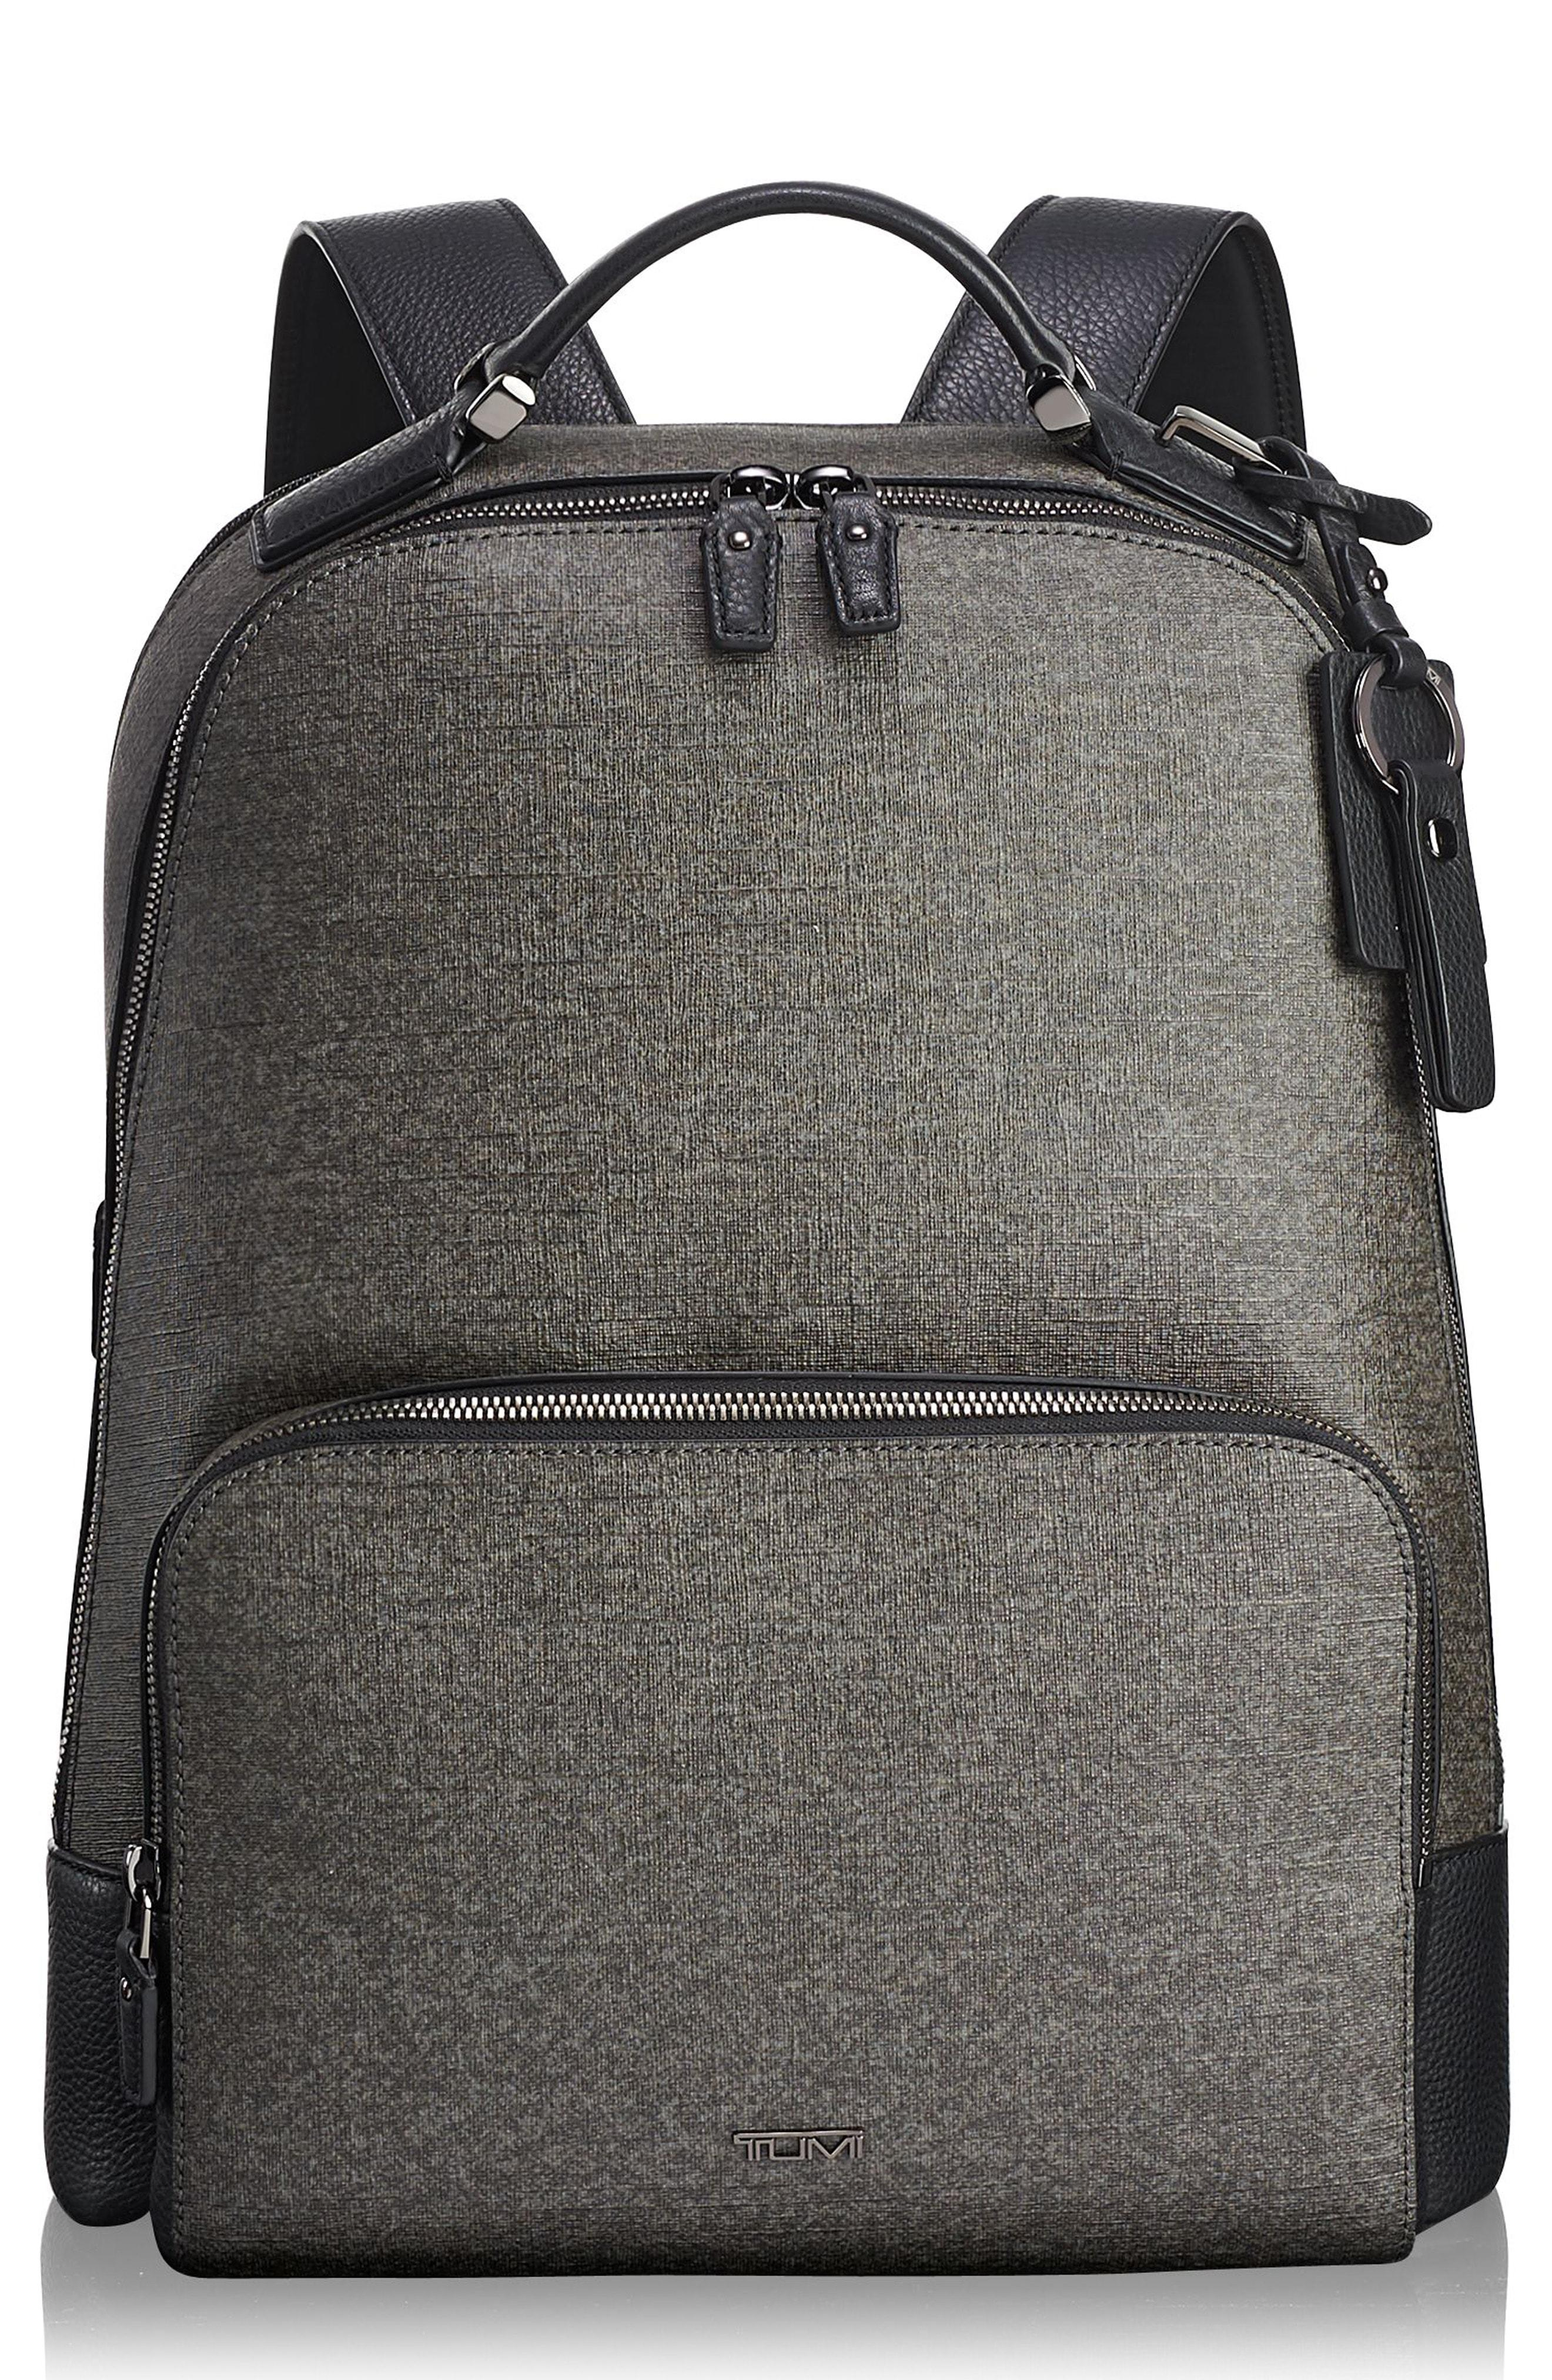 d59543042ac2 Lyst - Tumi Stanton Gail Leather Laptop Backpack in Gray - Save 20%